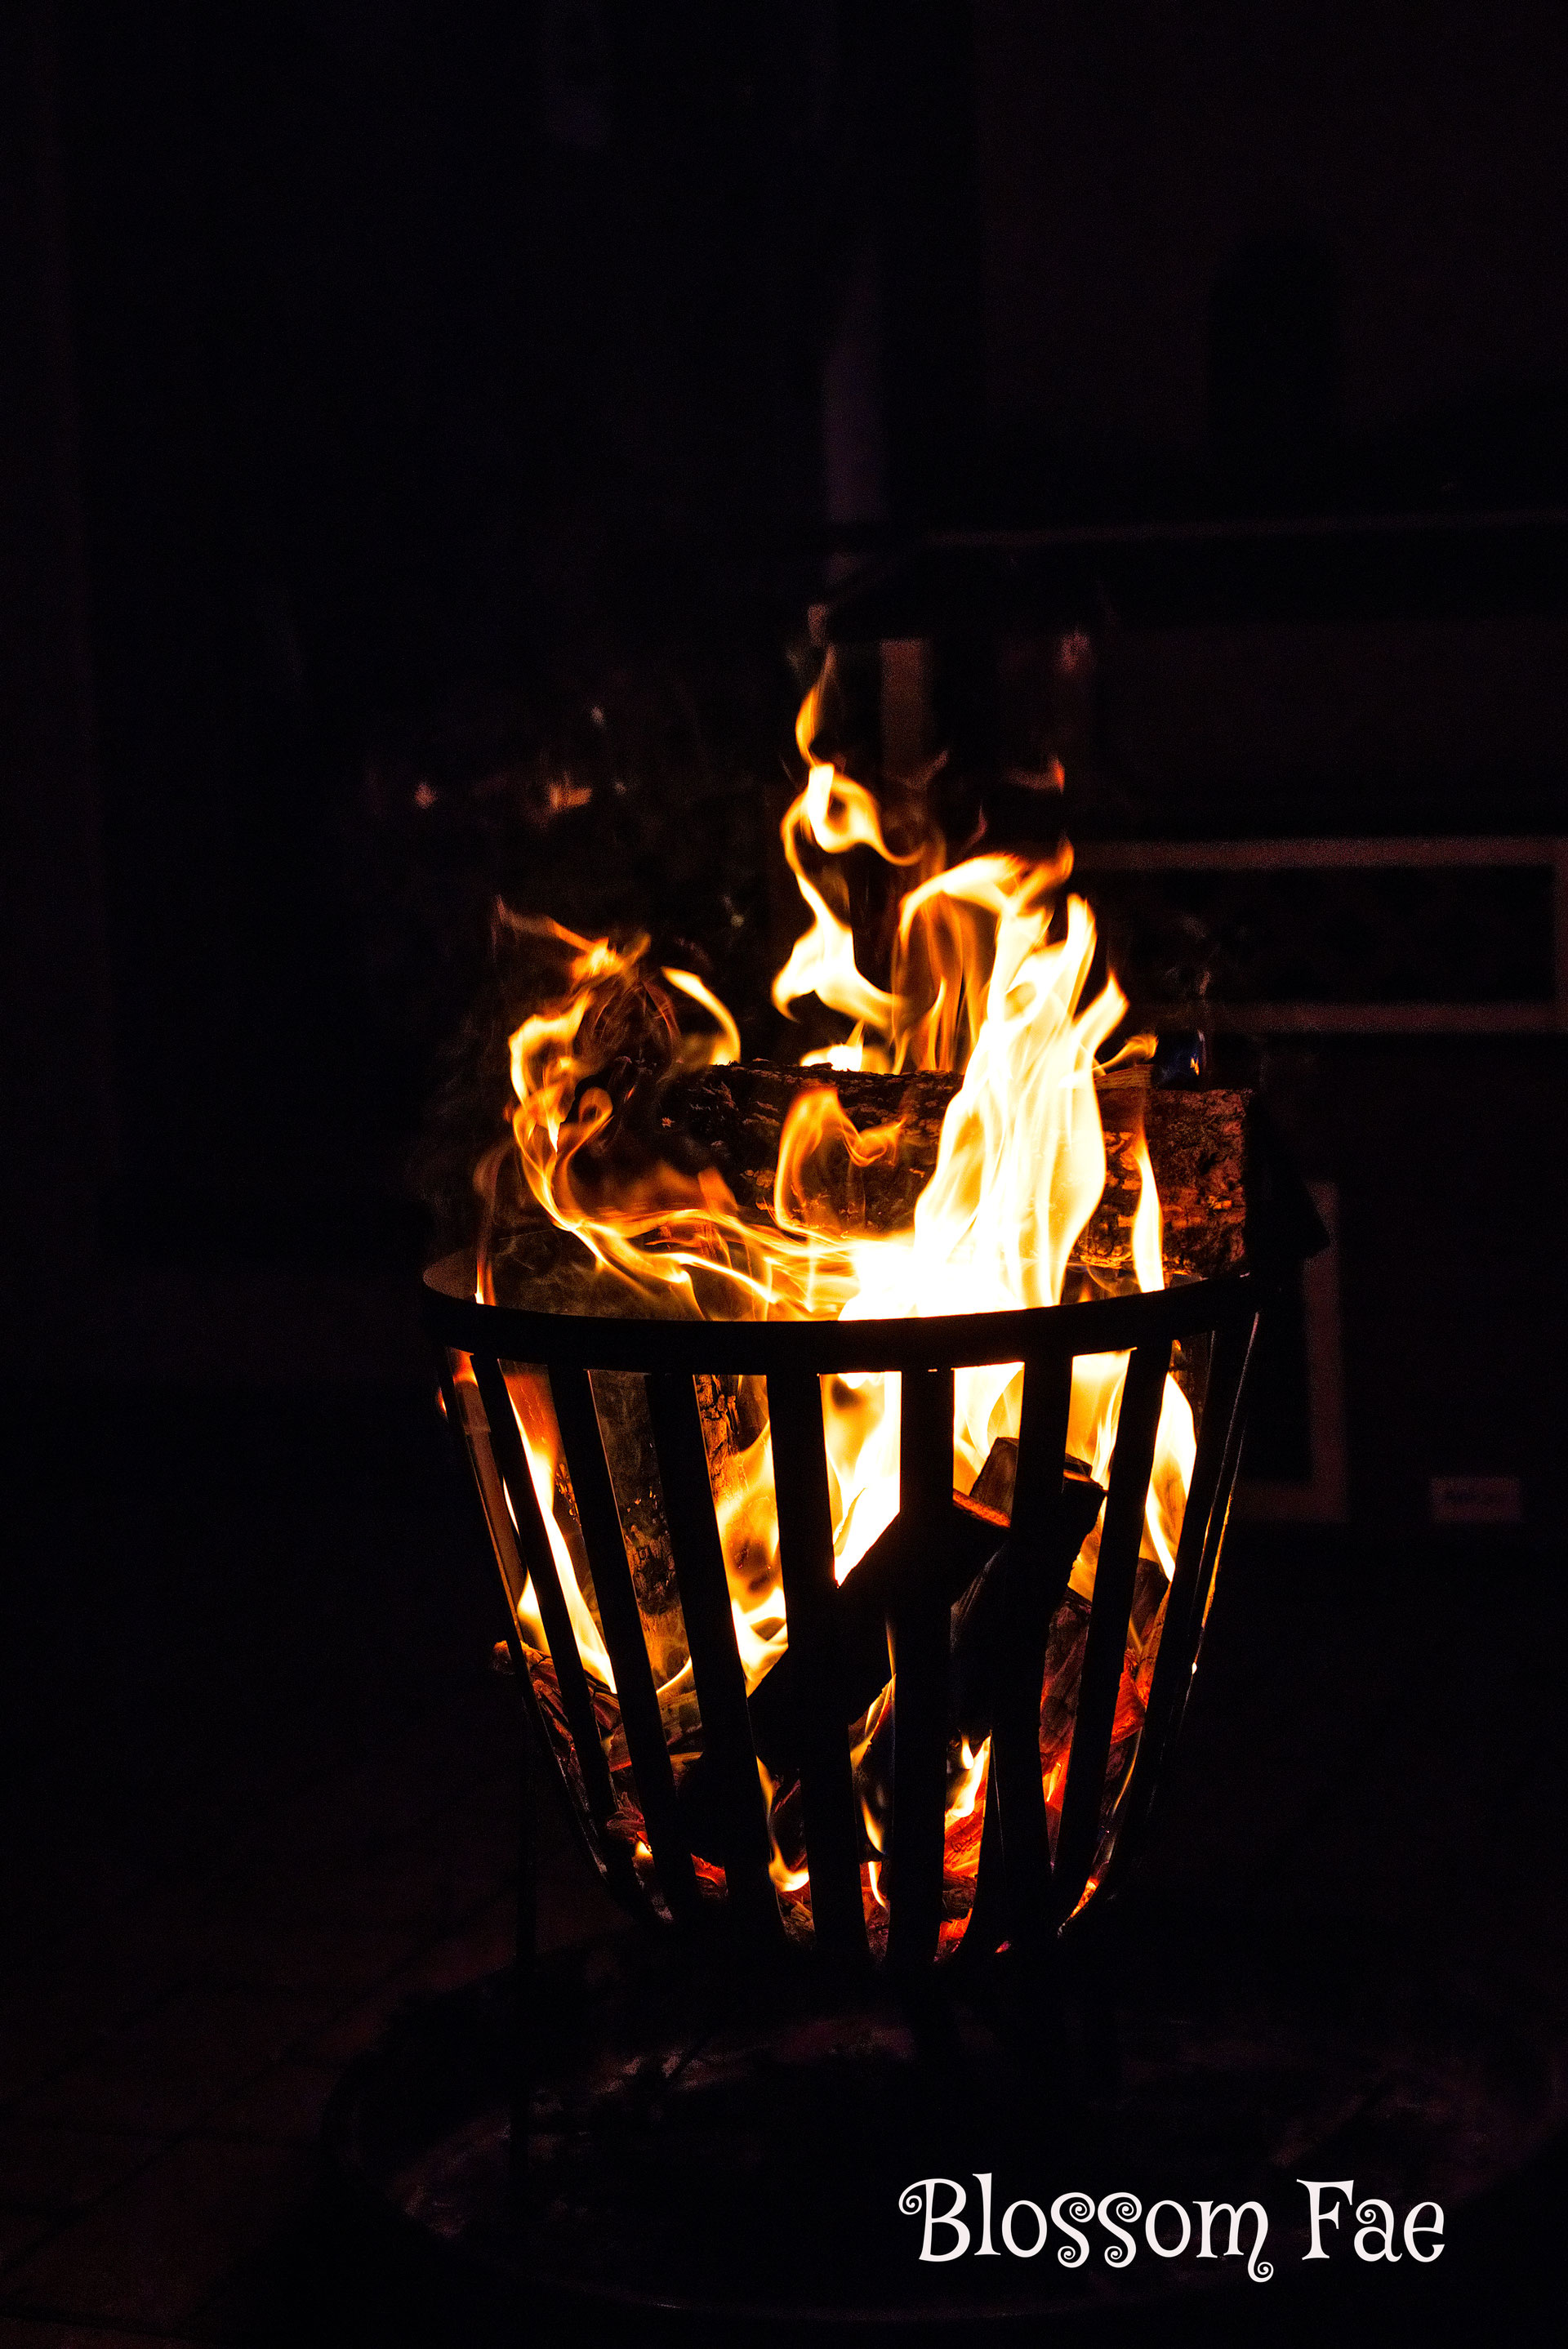 Element Fire - Tales Unfold Free Tarot and Oracle Readings